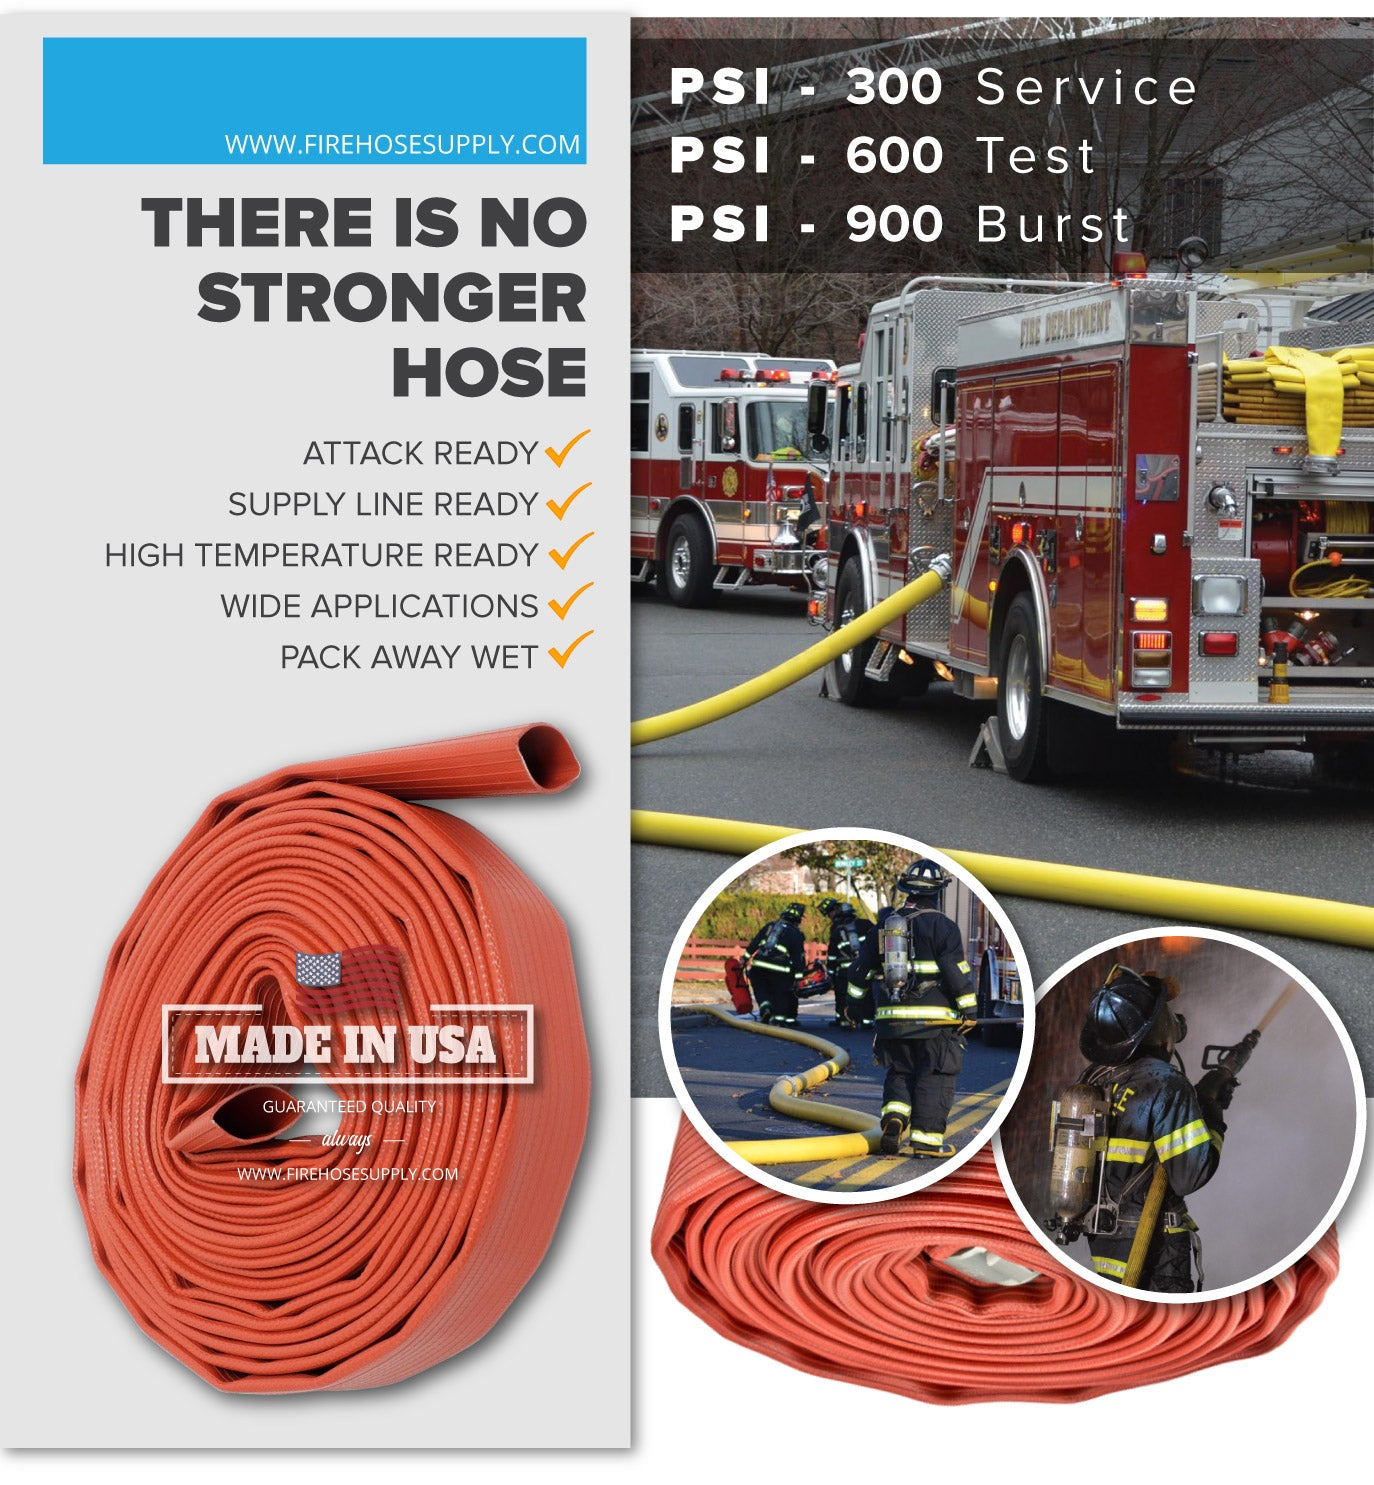 1.75 Inch Rubber Fire Hose Material Only Supply And Attack Ready Firefighter Red 600 PSI Test